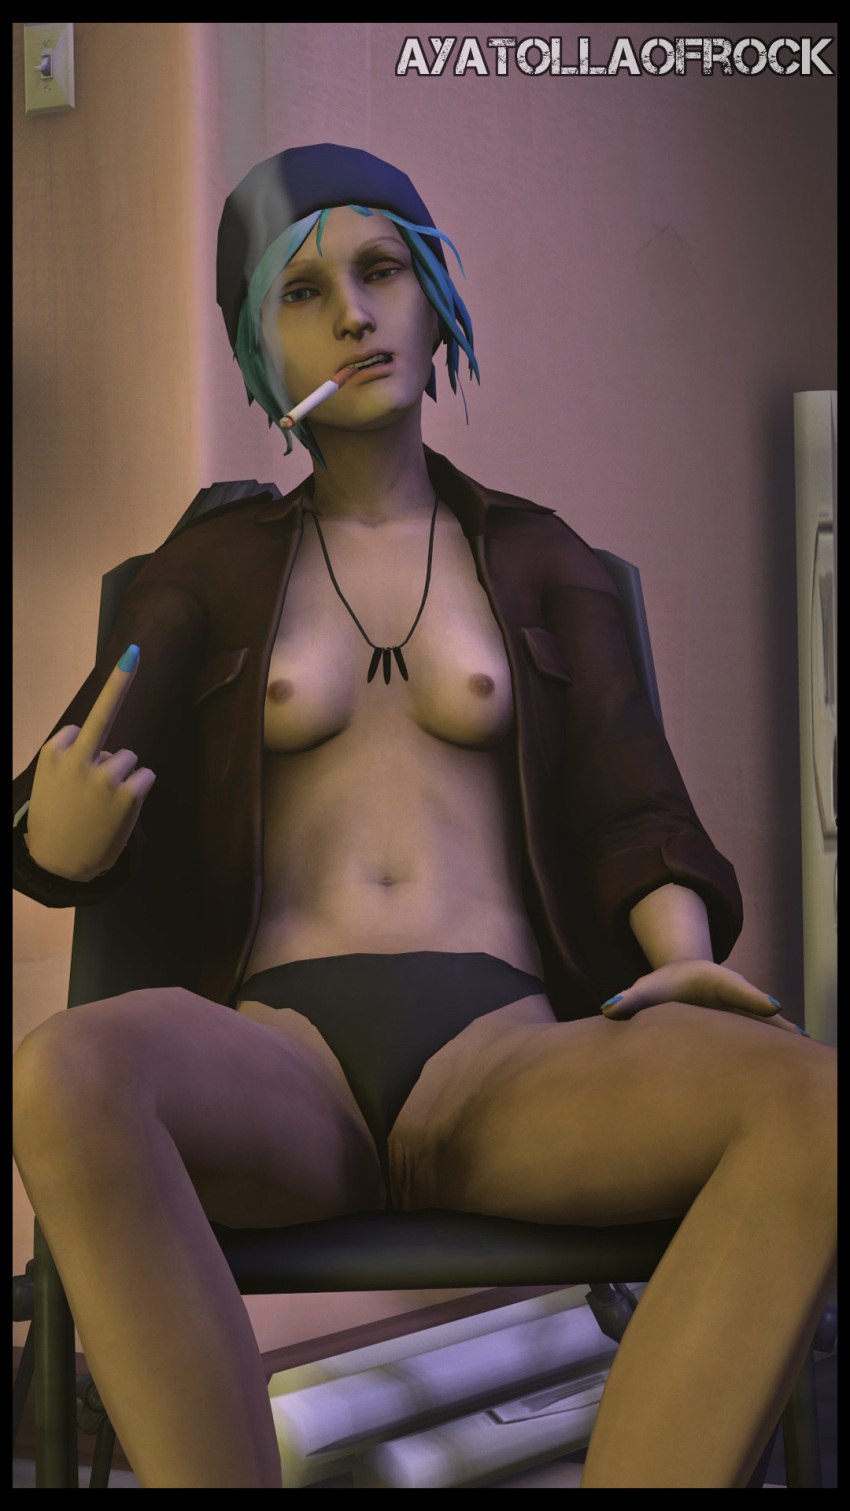 david madsen is life strange Fallout new vegas daughters of ares armor